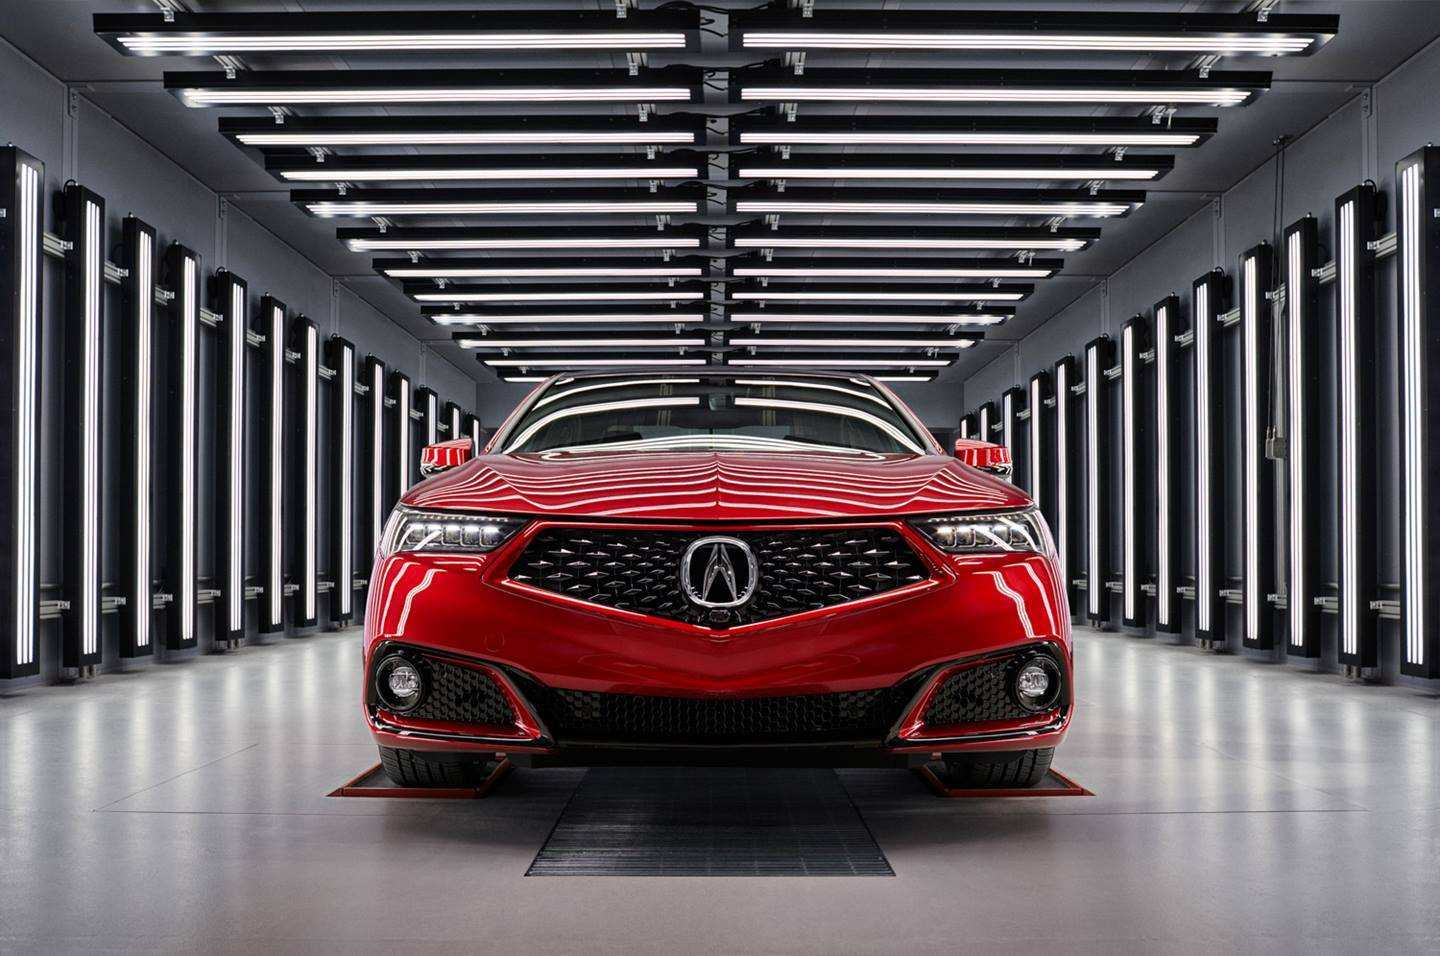 61 New Acura Legend 2020 Review by Acura Legend 2020 - Car Review : Car Review